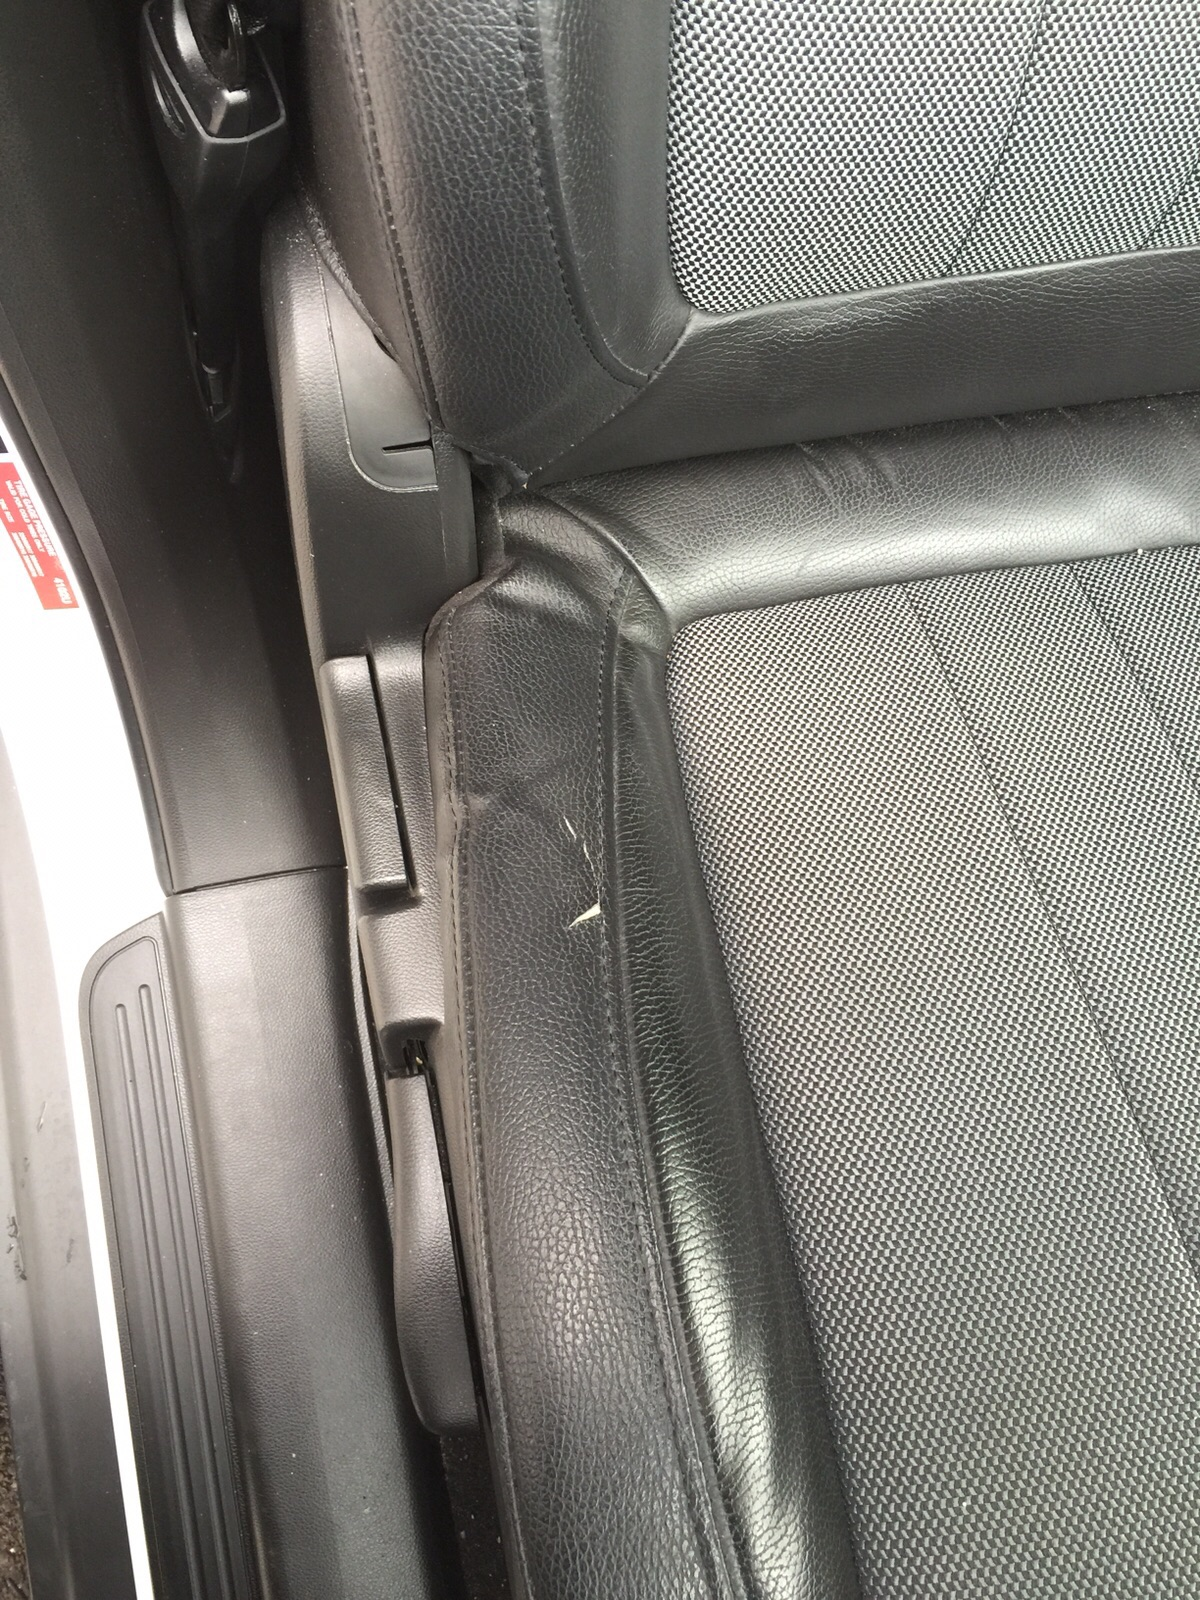 Drivers seat bolster has small area where the leather has started to split.